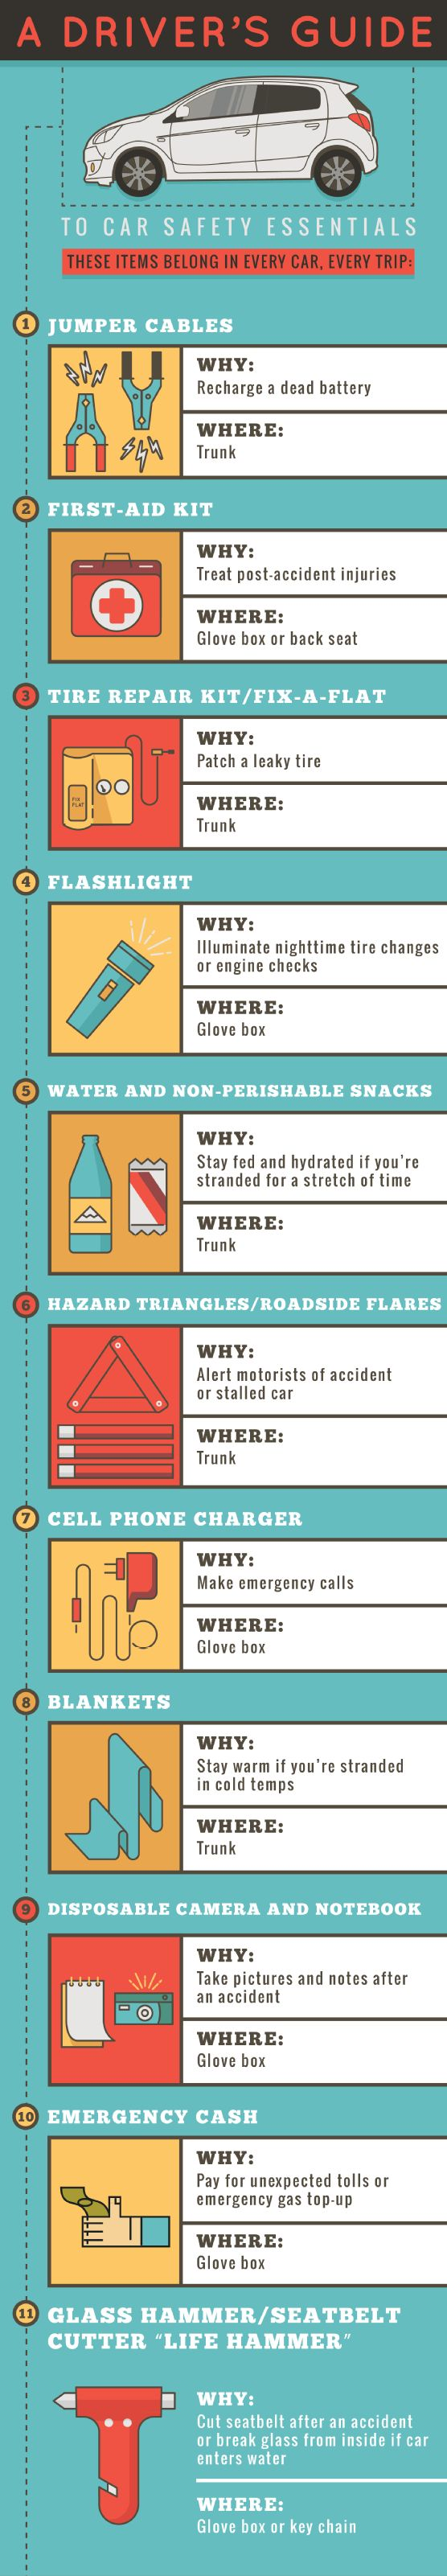 A Driver's Guide To Car Safety Essentials #Infographic #Safety #driver